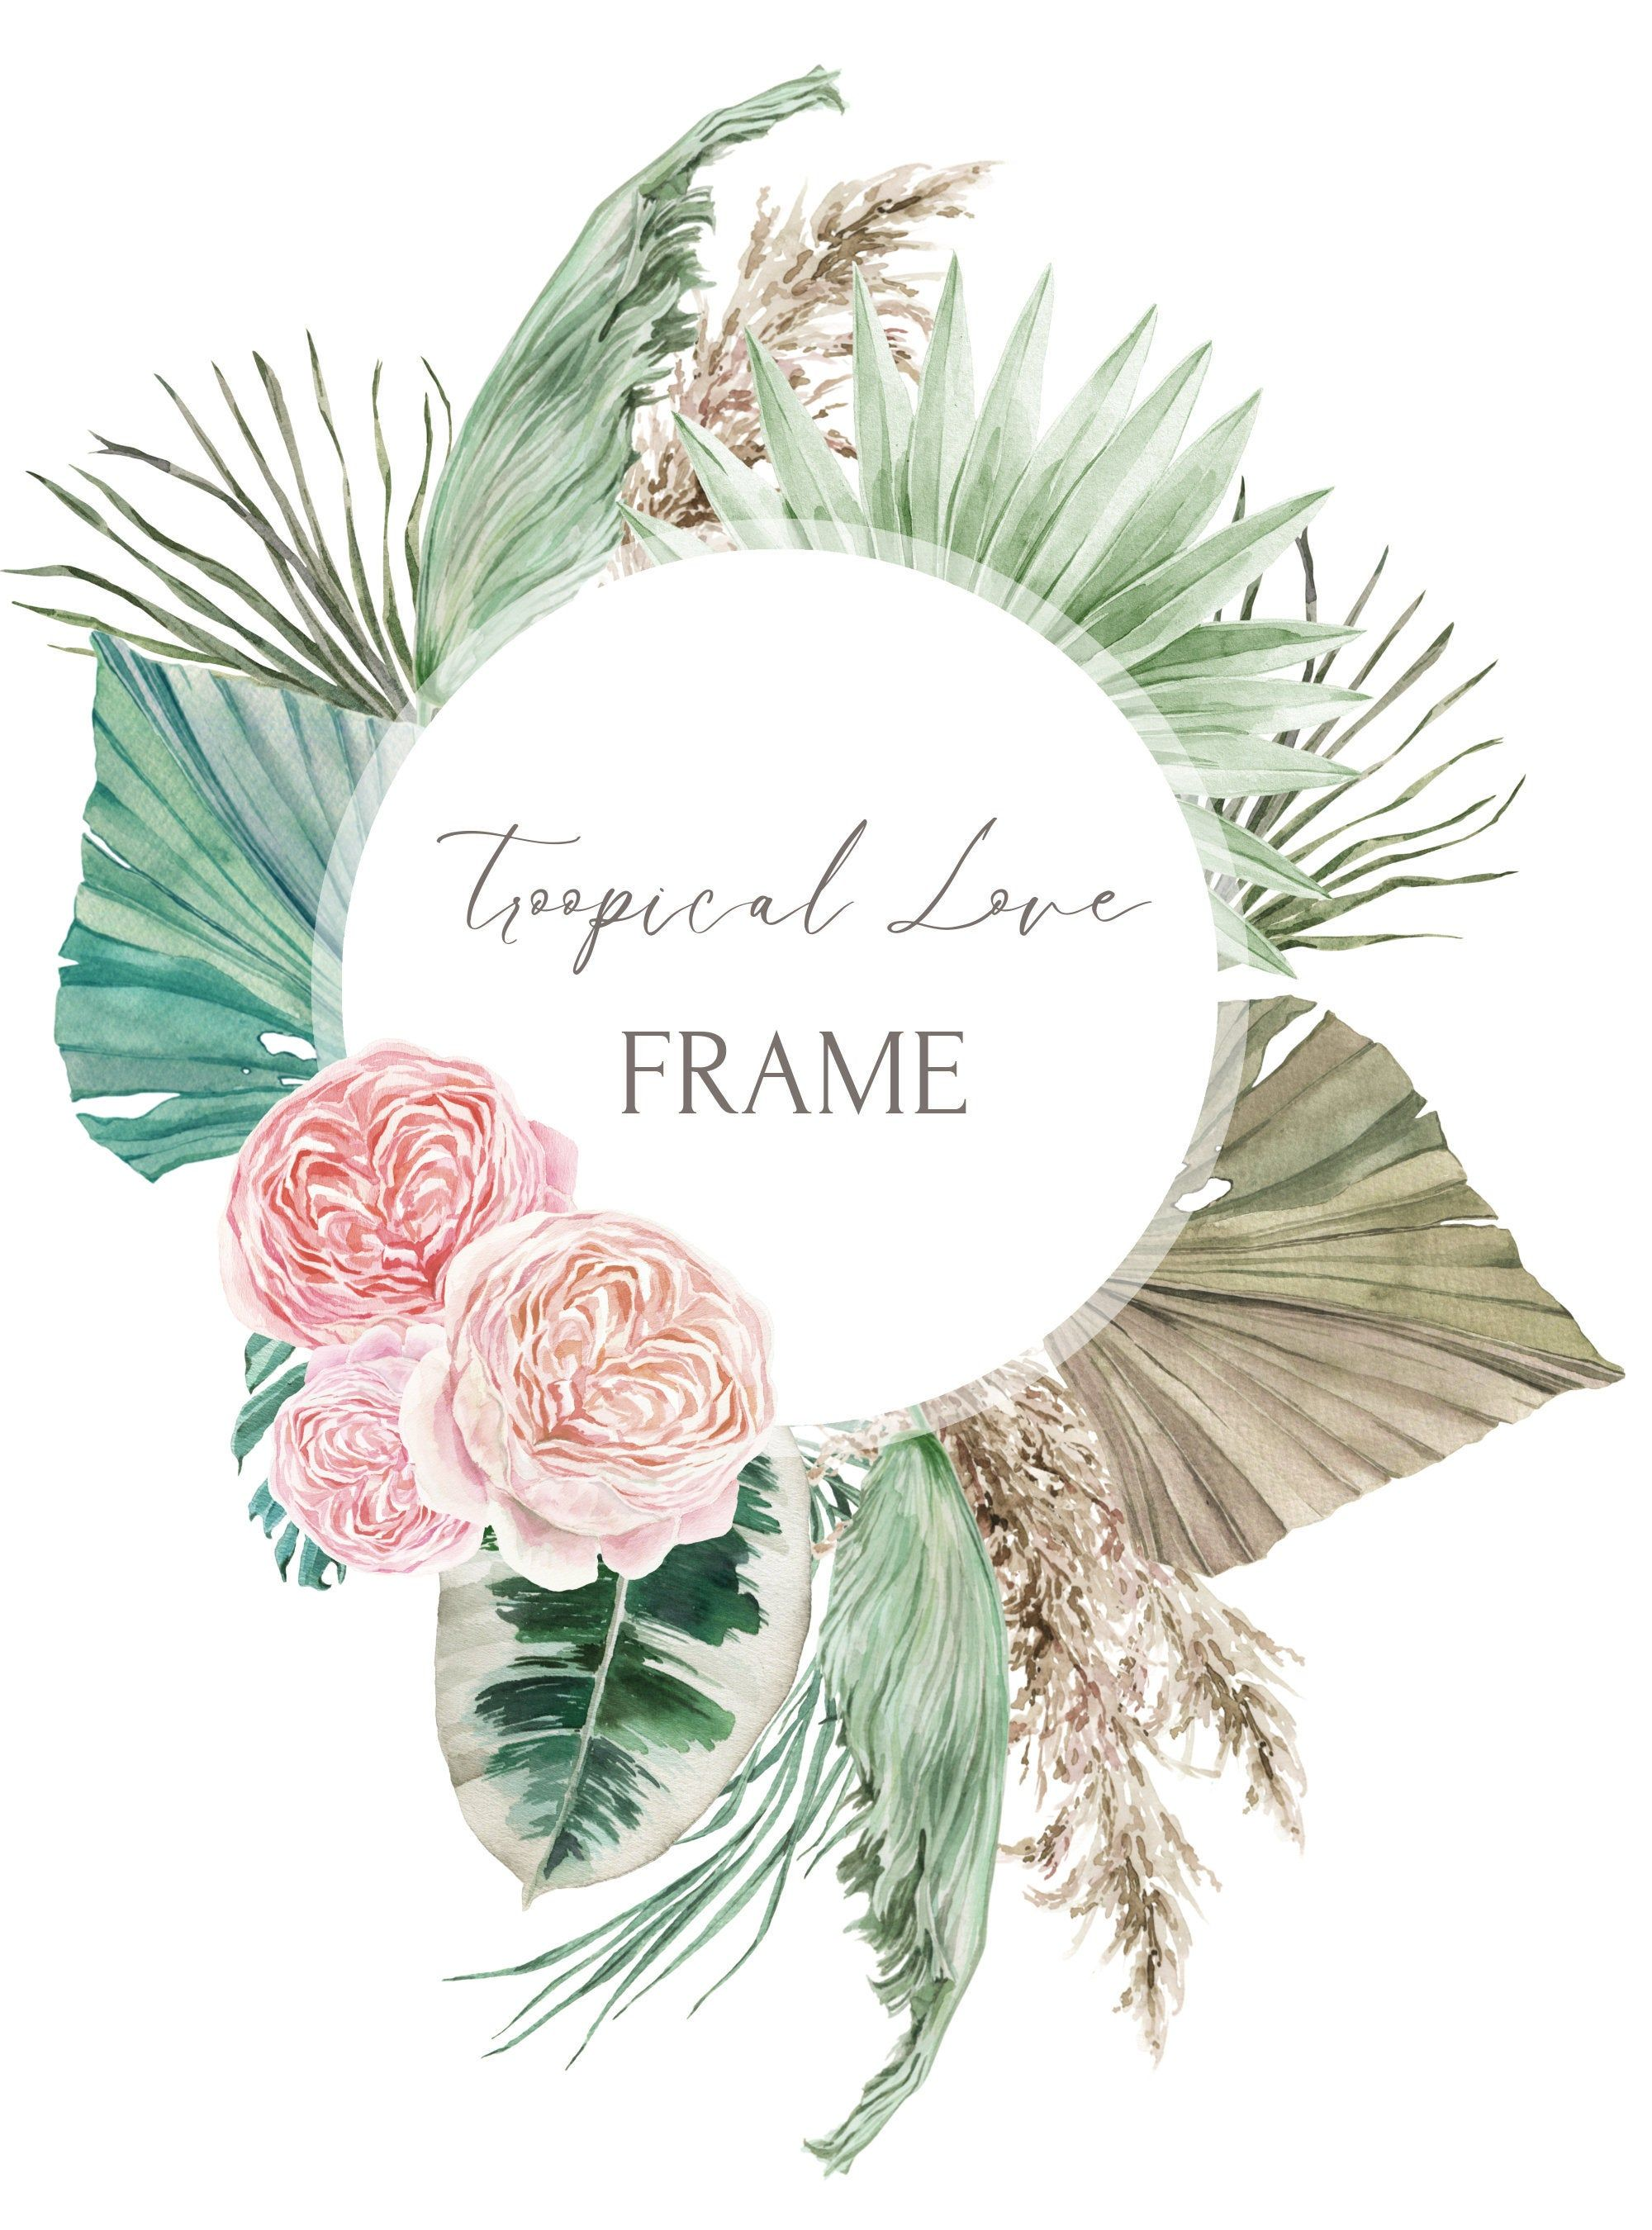 Rose wreath clipart Boho rose clipart Dried flower wreath. Rose frame png